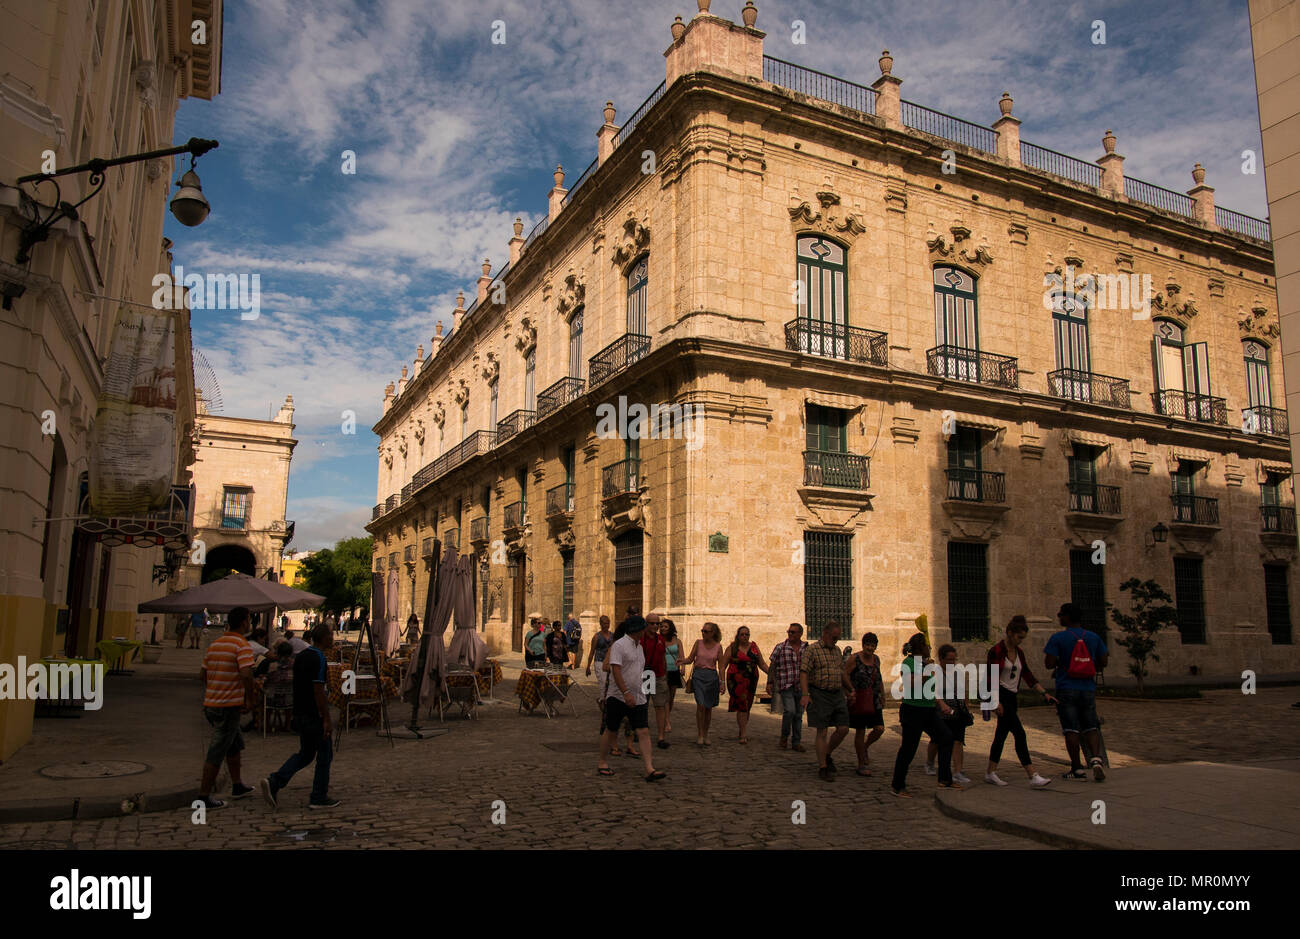 Typical building in old Havana - Stock Image